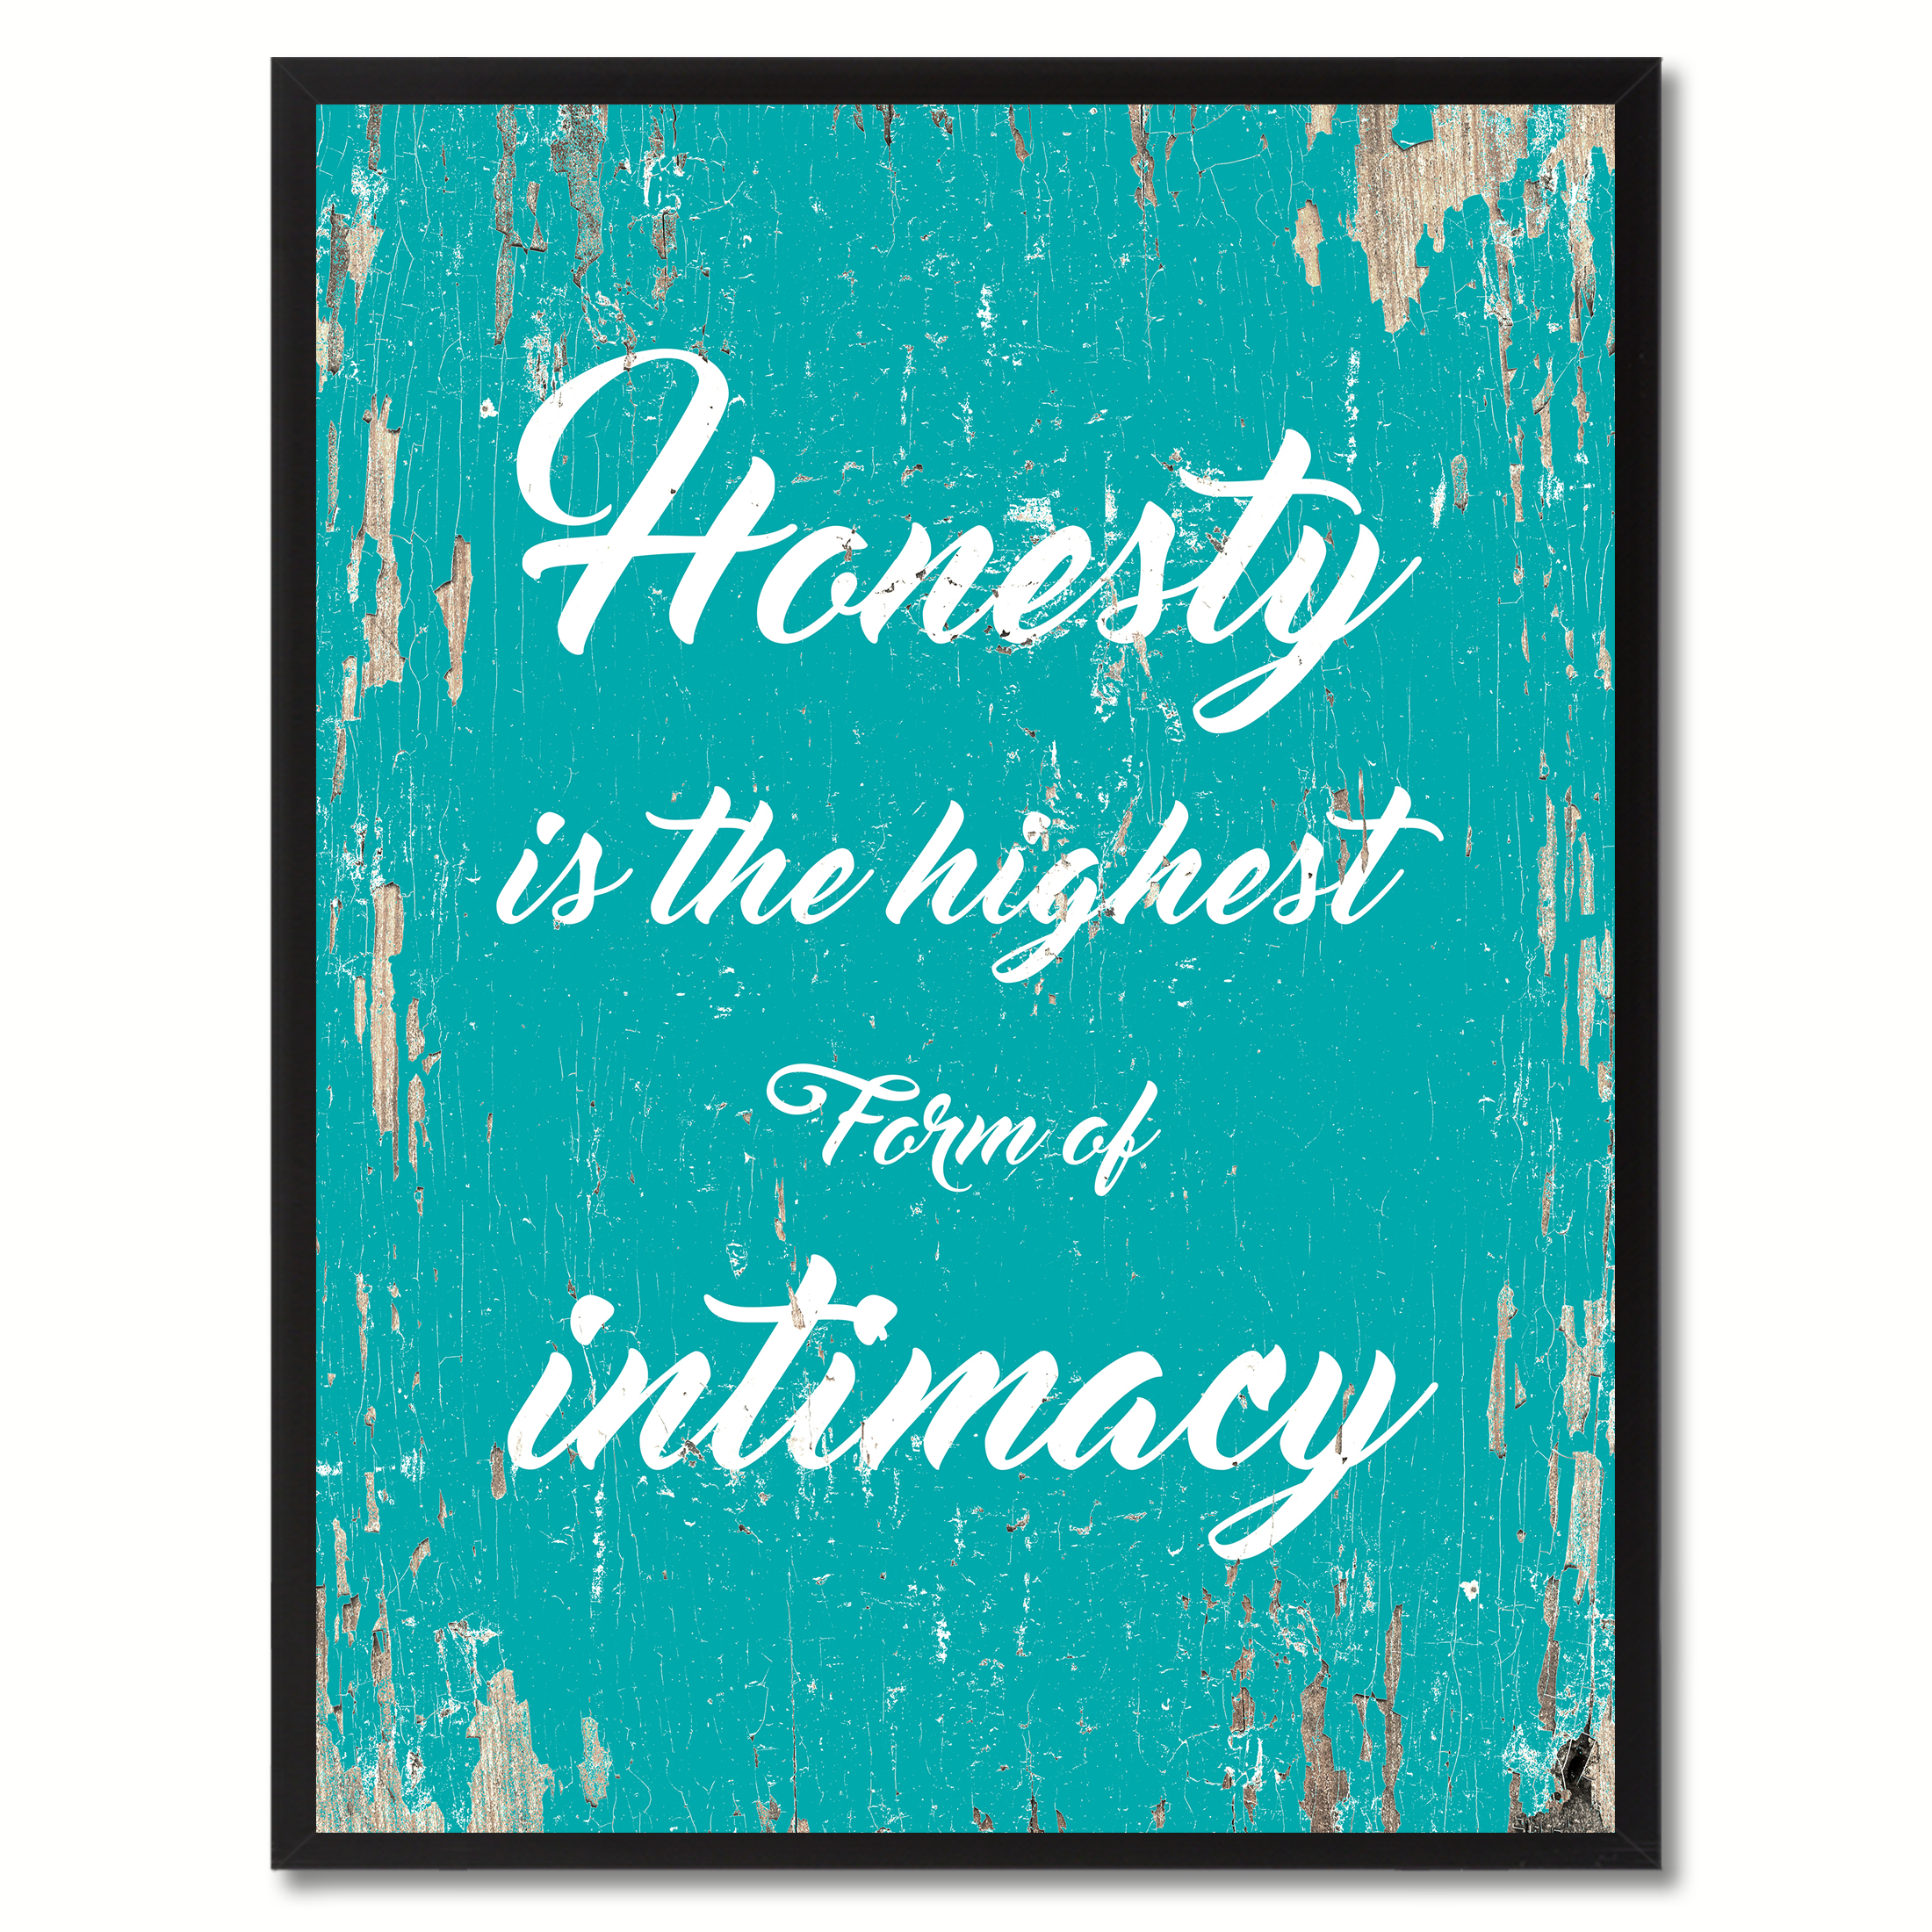 "Honesty Is The Highest Form Of Intimacy Inspirational Saying Canvas Print with Picture Frame Home Decor Wall Art Gifts - 7"" x 9\"""